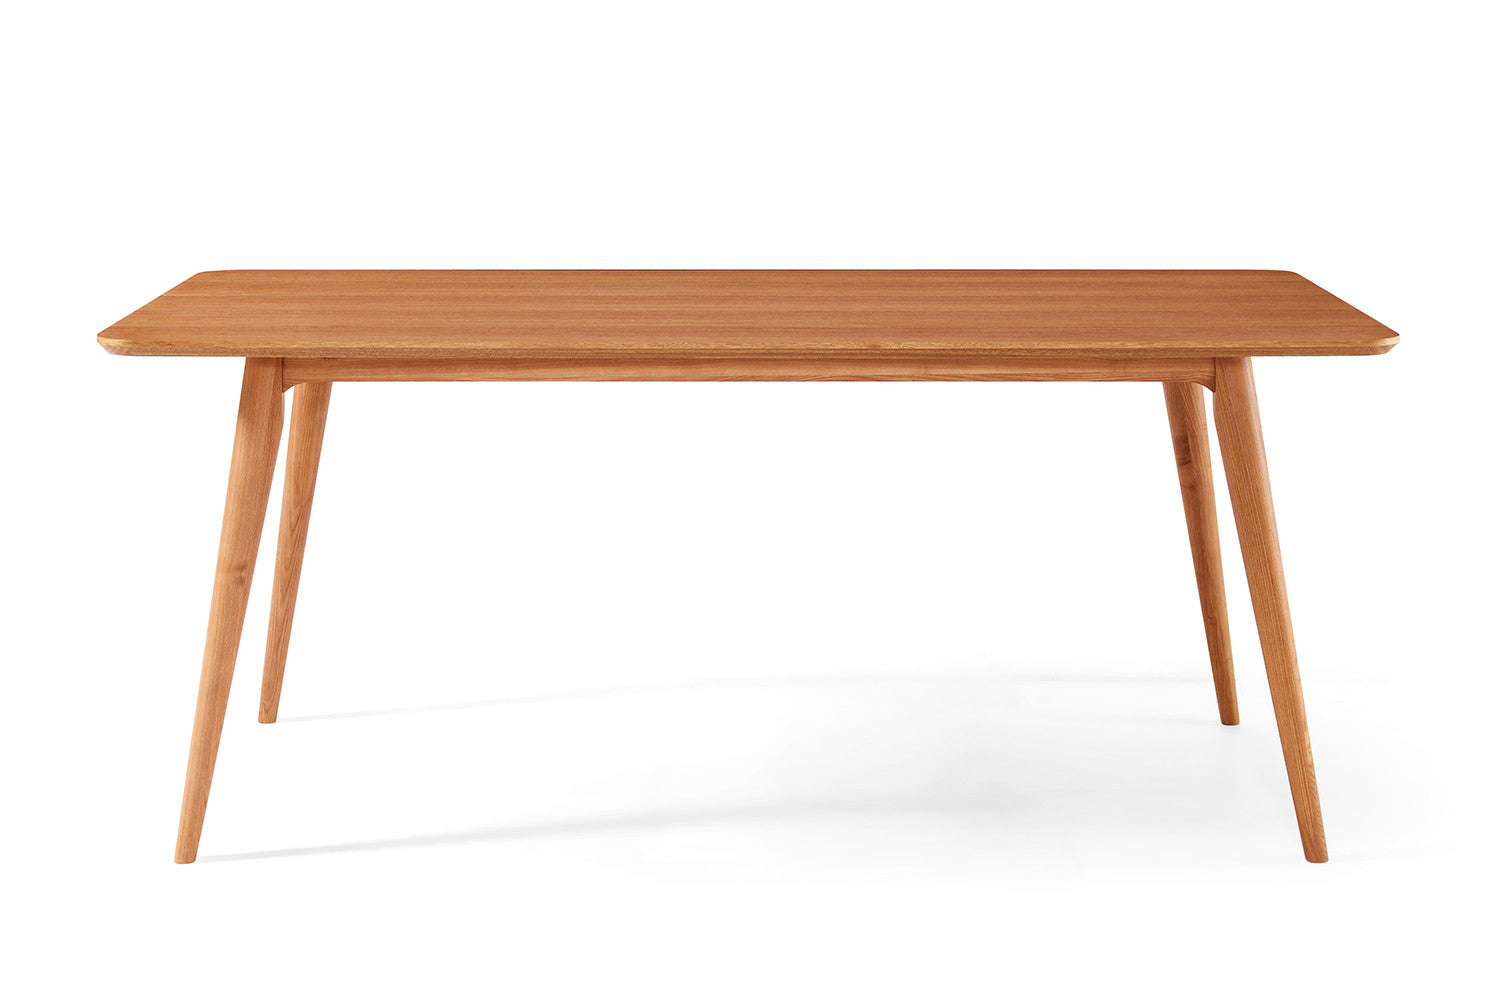 Table de salle manger design en bois julia dewarens for Table bois clair scandinave